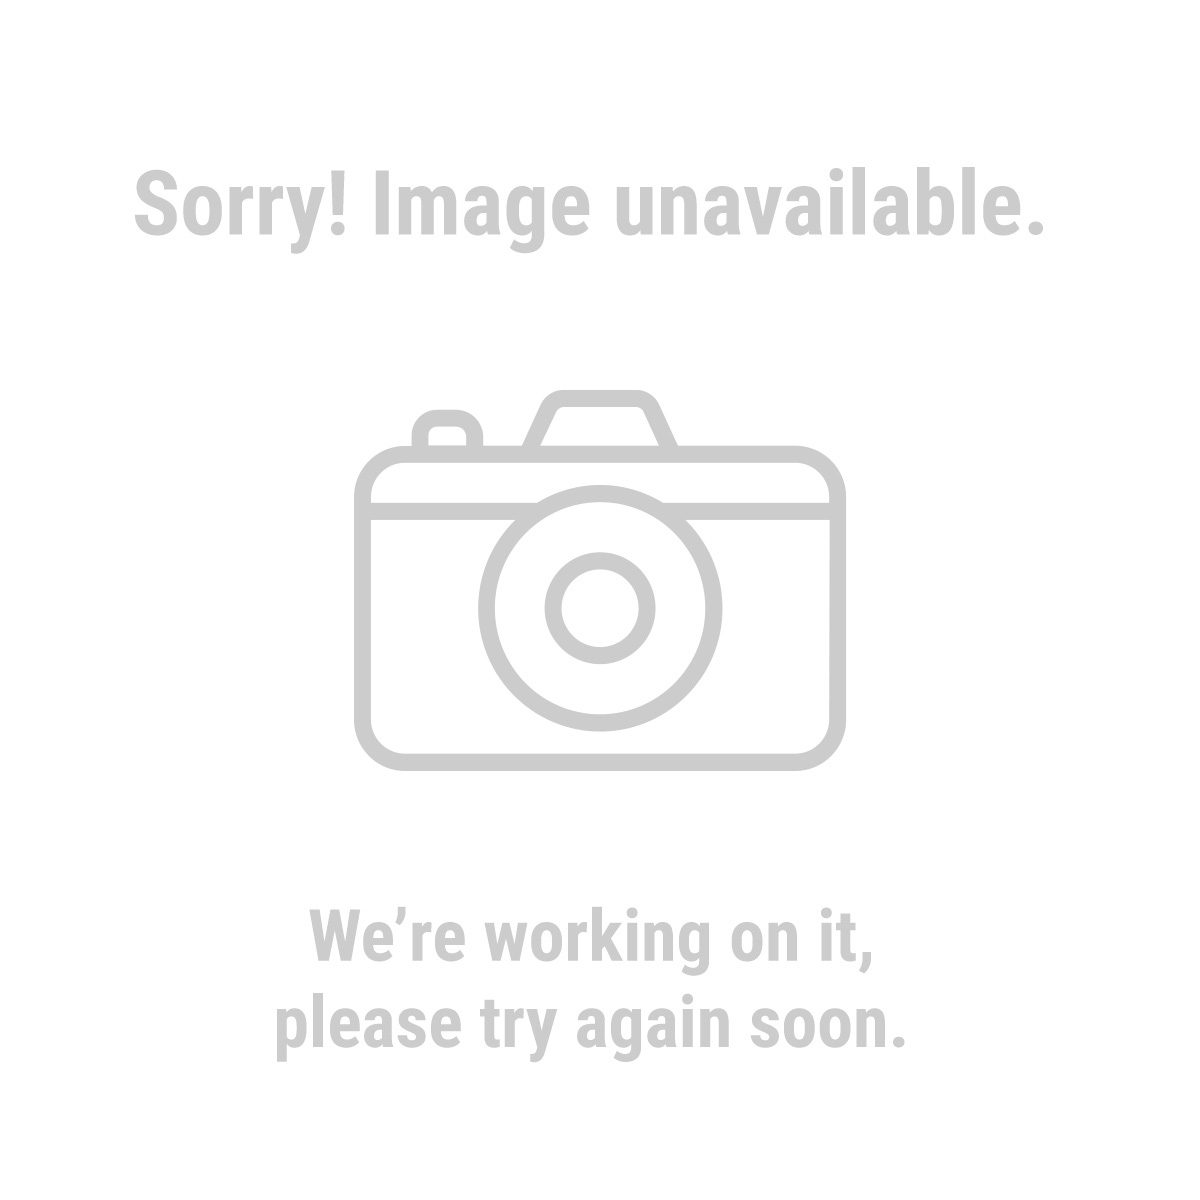 Harbor Freight Tools You Own And Enjoy - Tools & Equipment ...